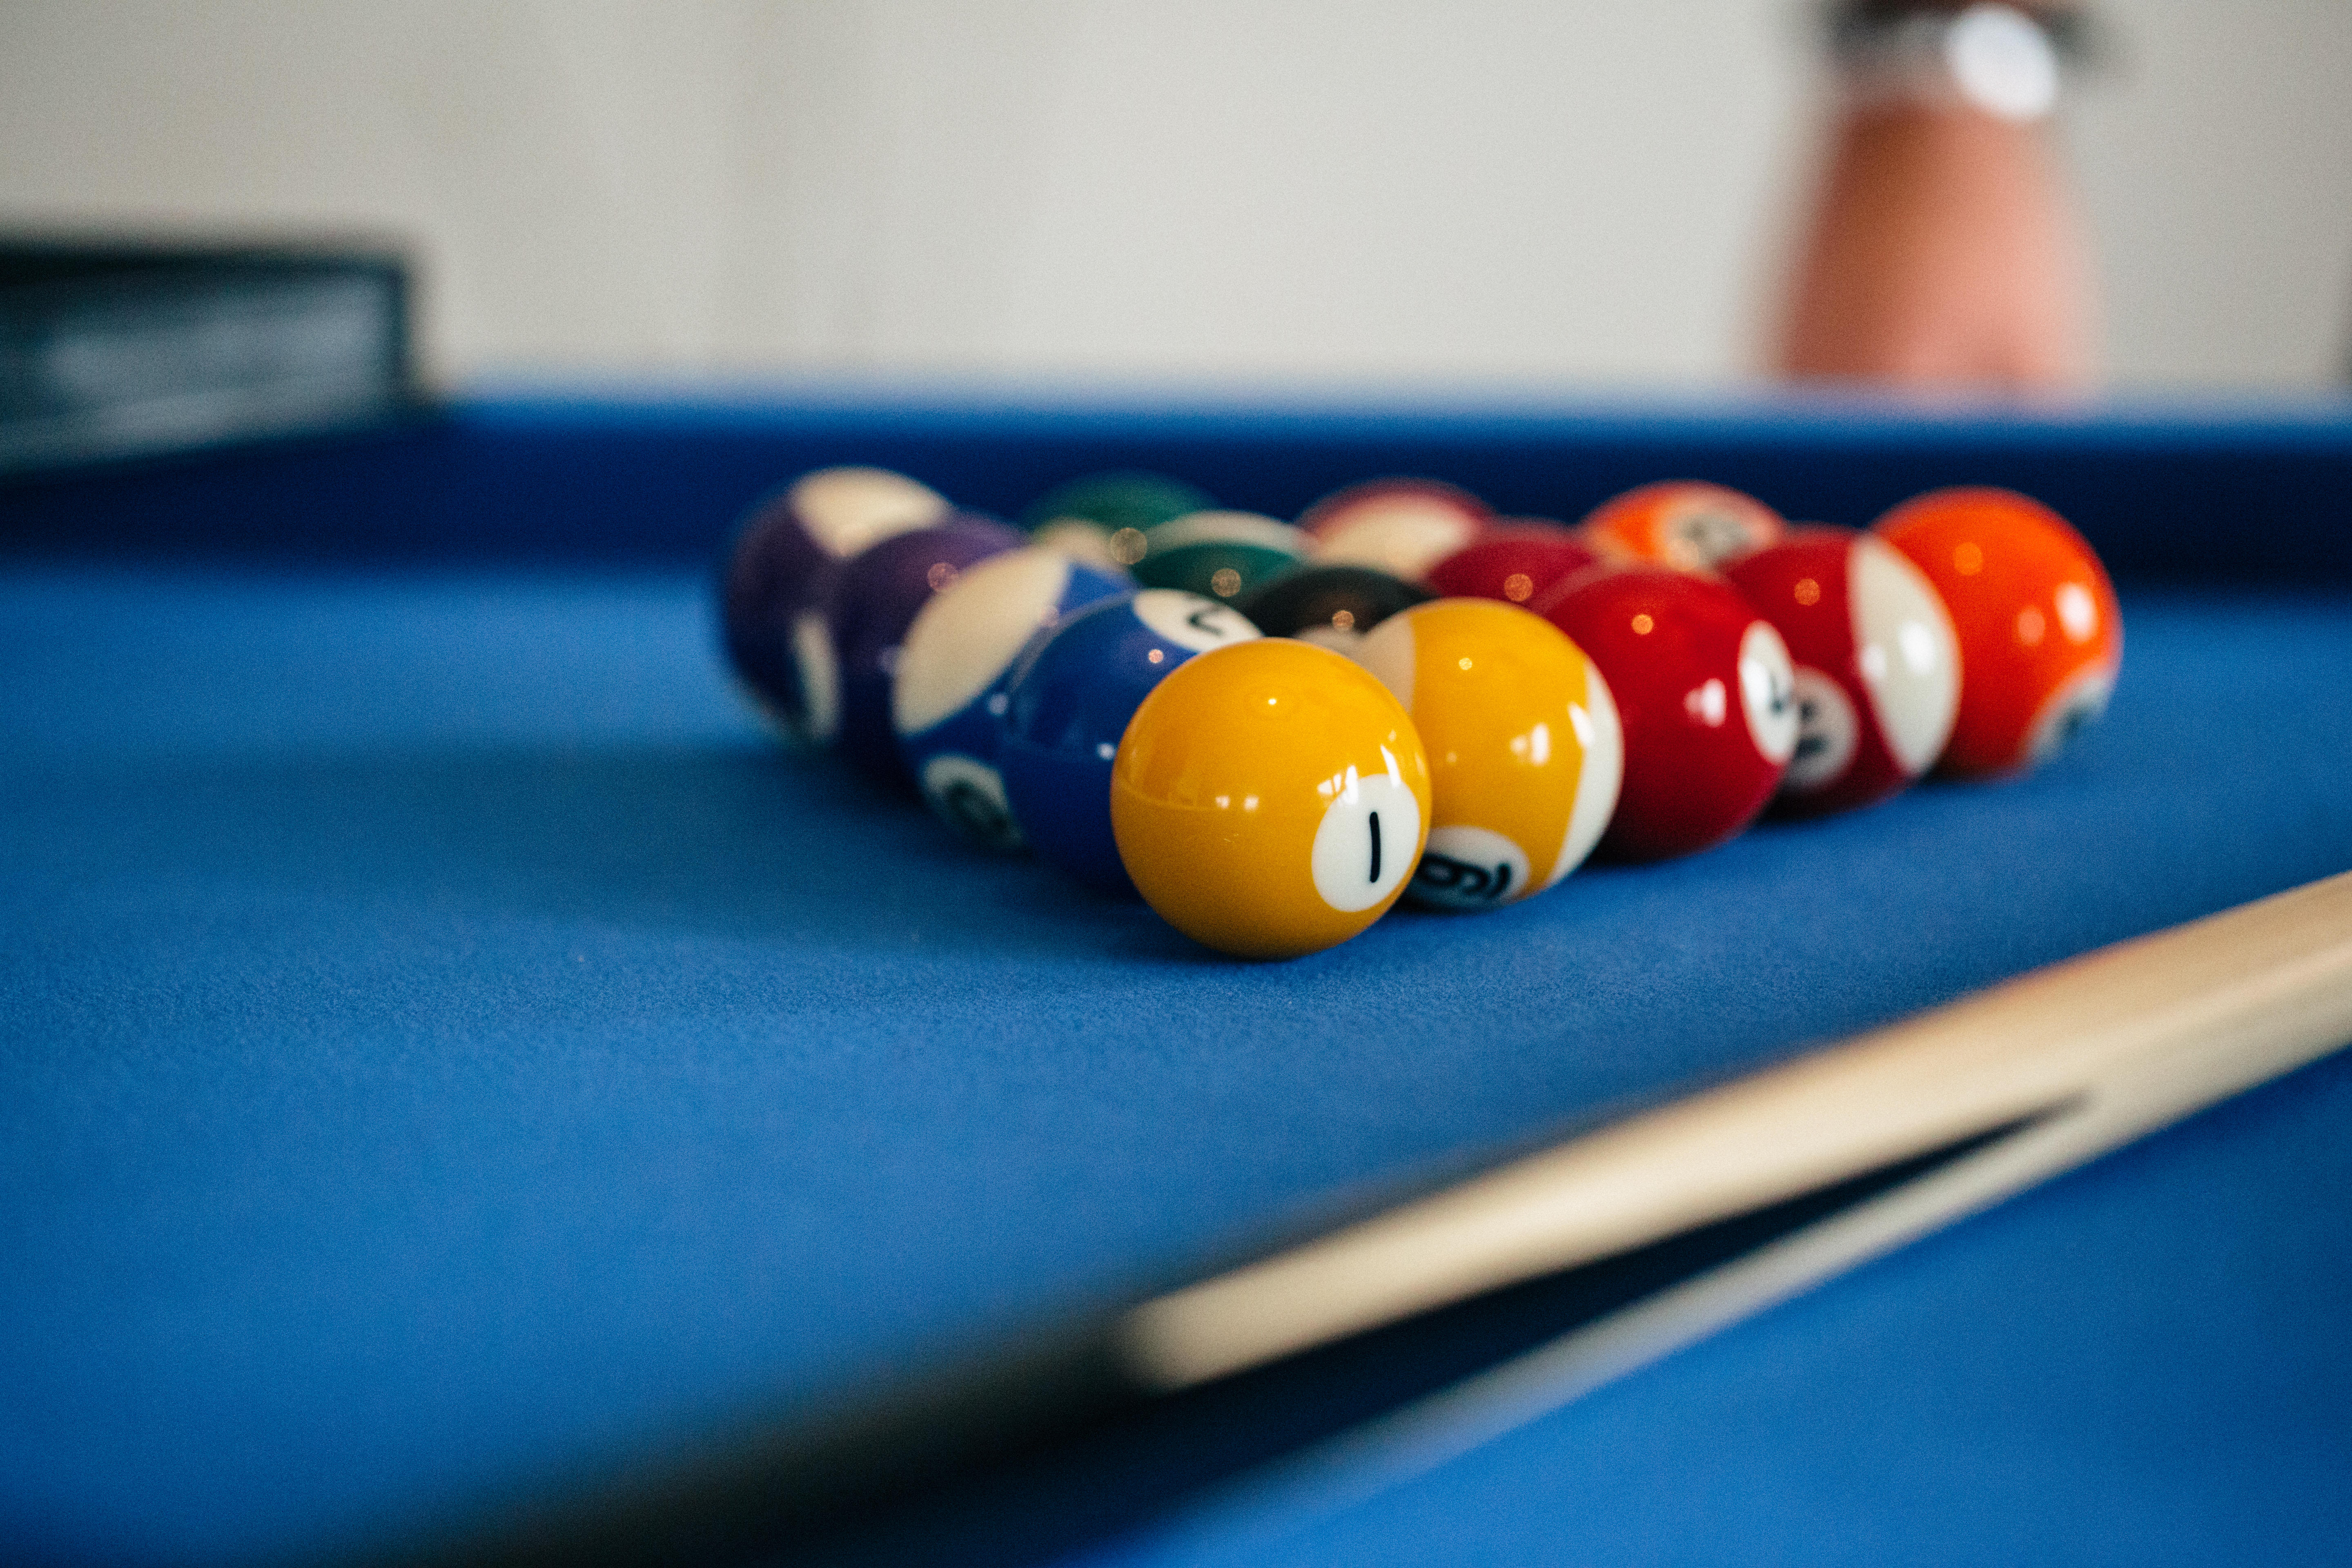 Billiards Equipment: What Do You Need?